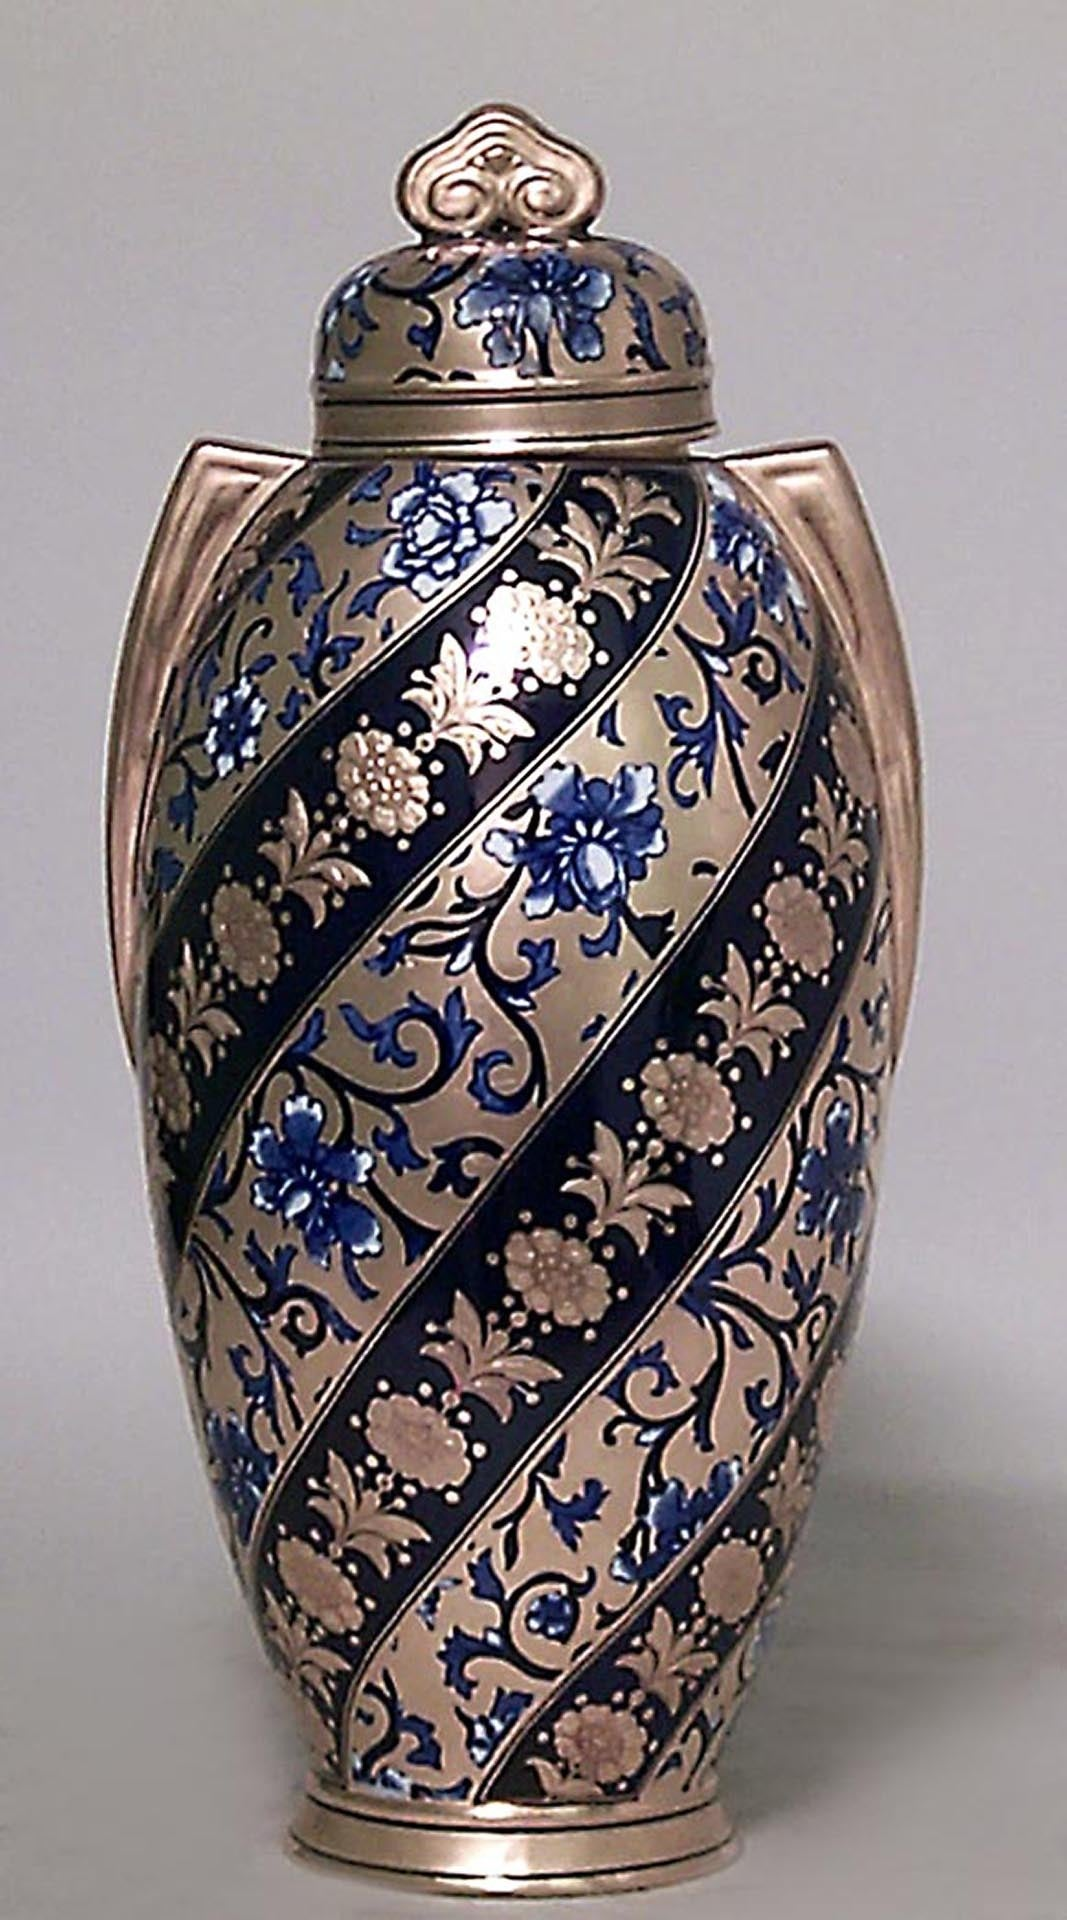 Painted Pair of 19th Century English Swirled Coalport Porcelain Vases For Sale